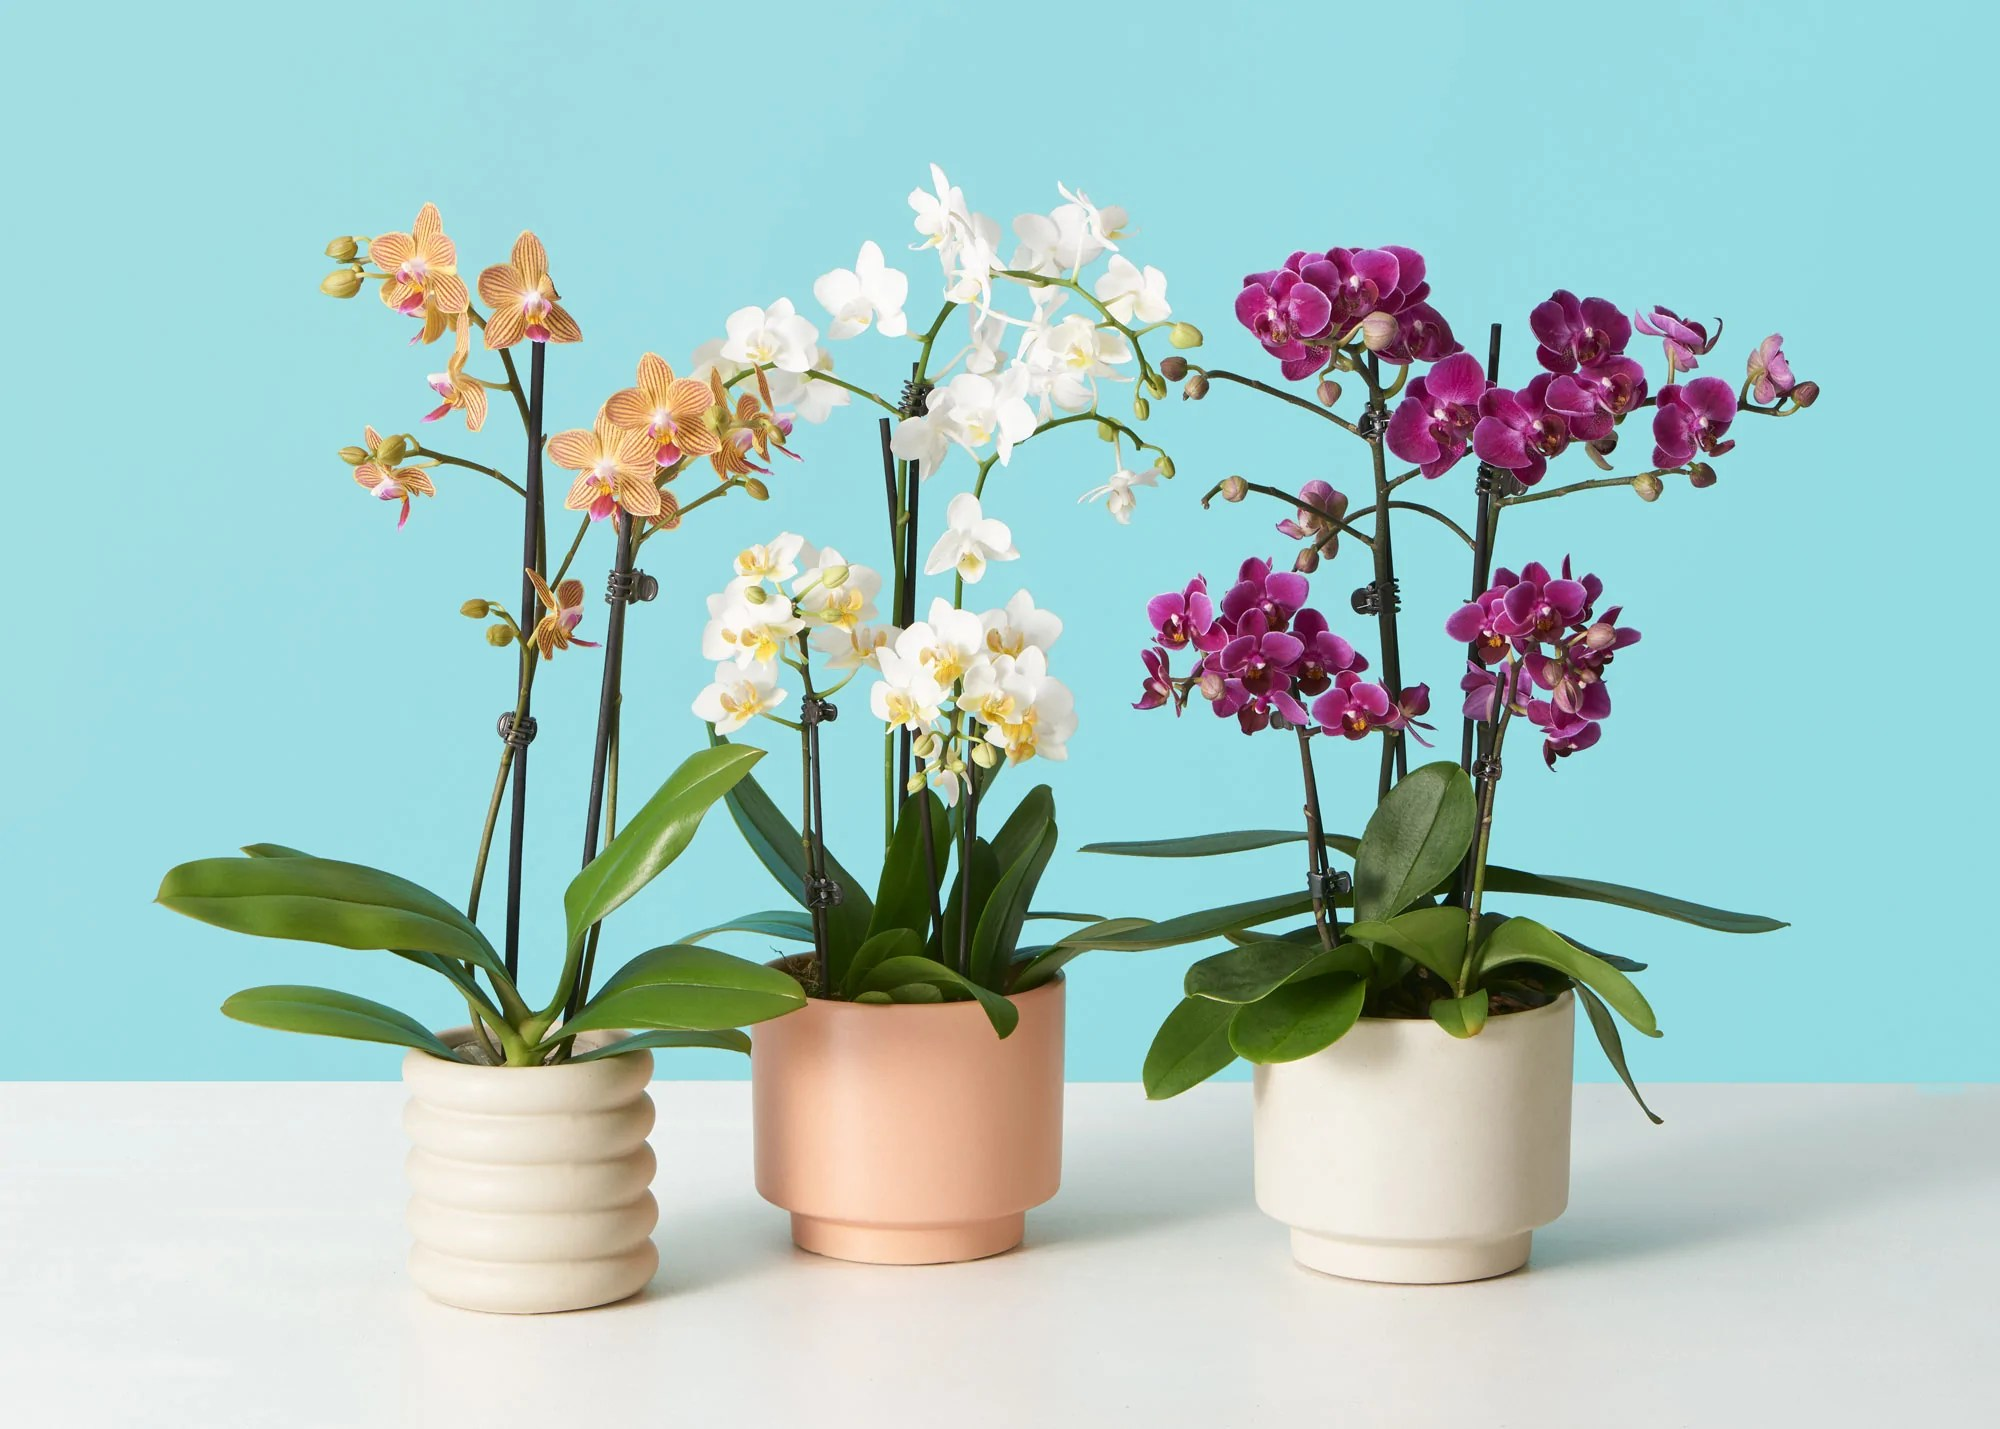 How To Care For Phalaenopsis Orchids Plant Care Tips The Sill